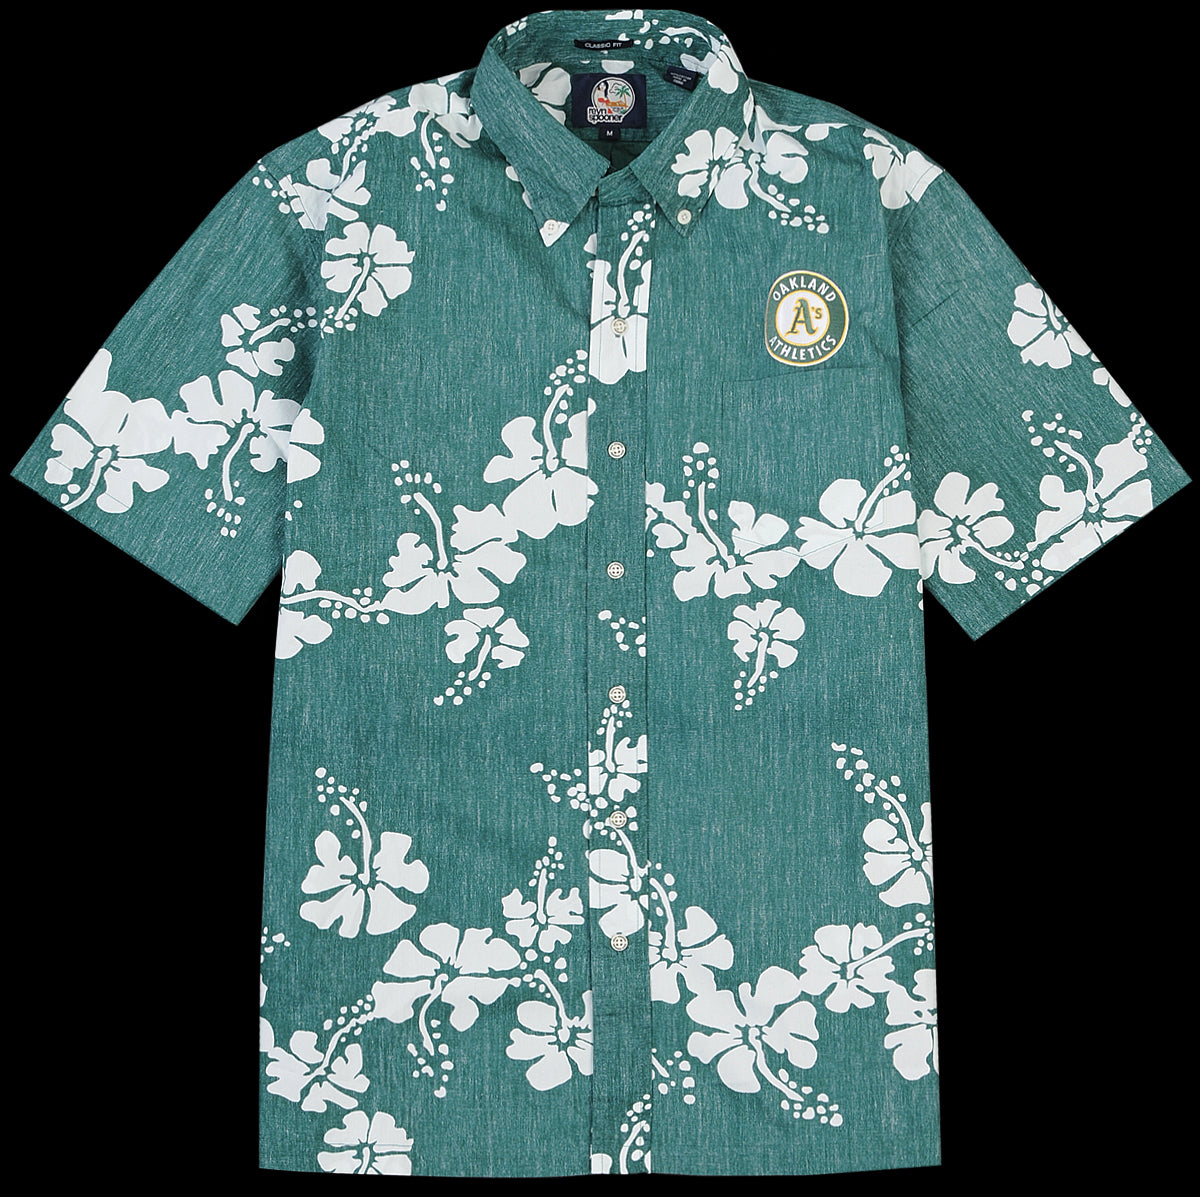 9593c9859 Reyn Spooner - Oakland A's 50th State Classic Button Down Shirt in Green